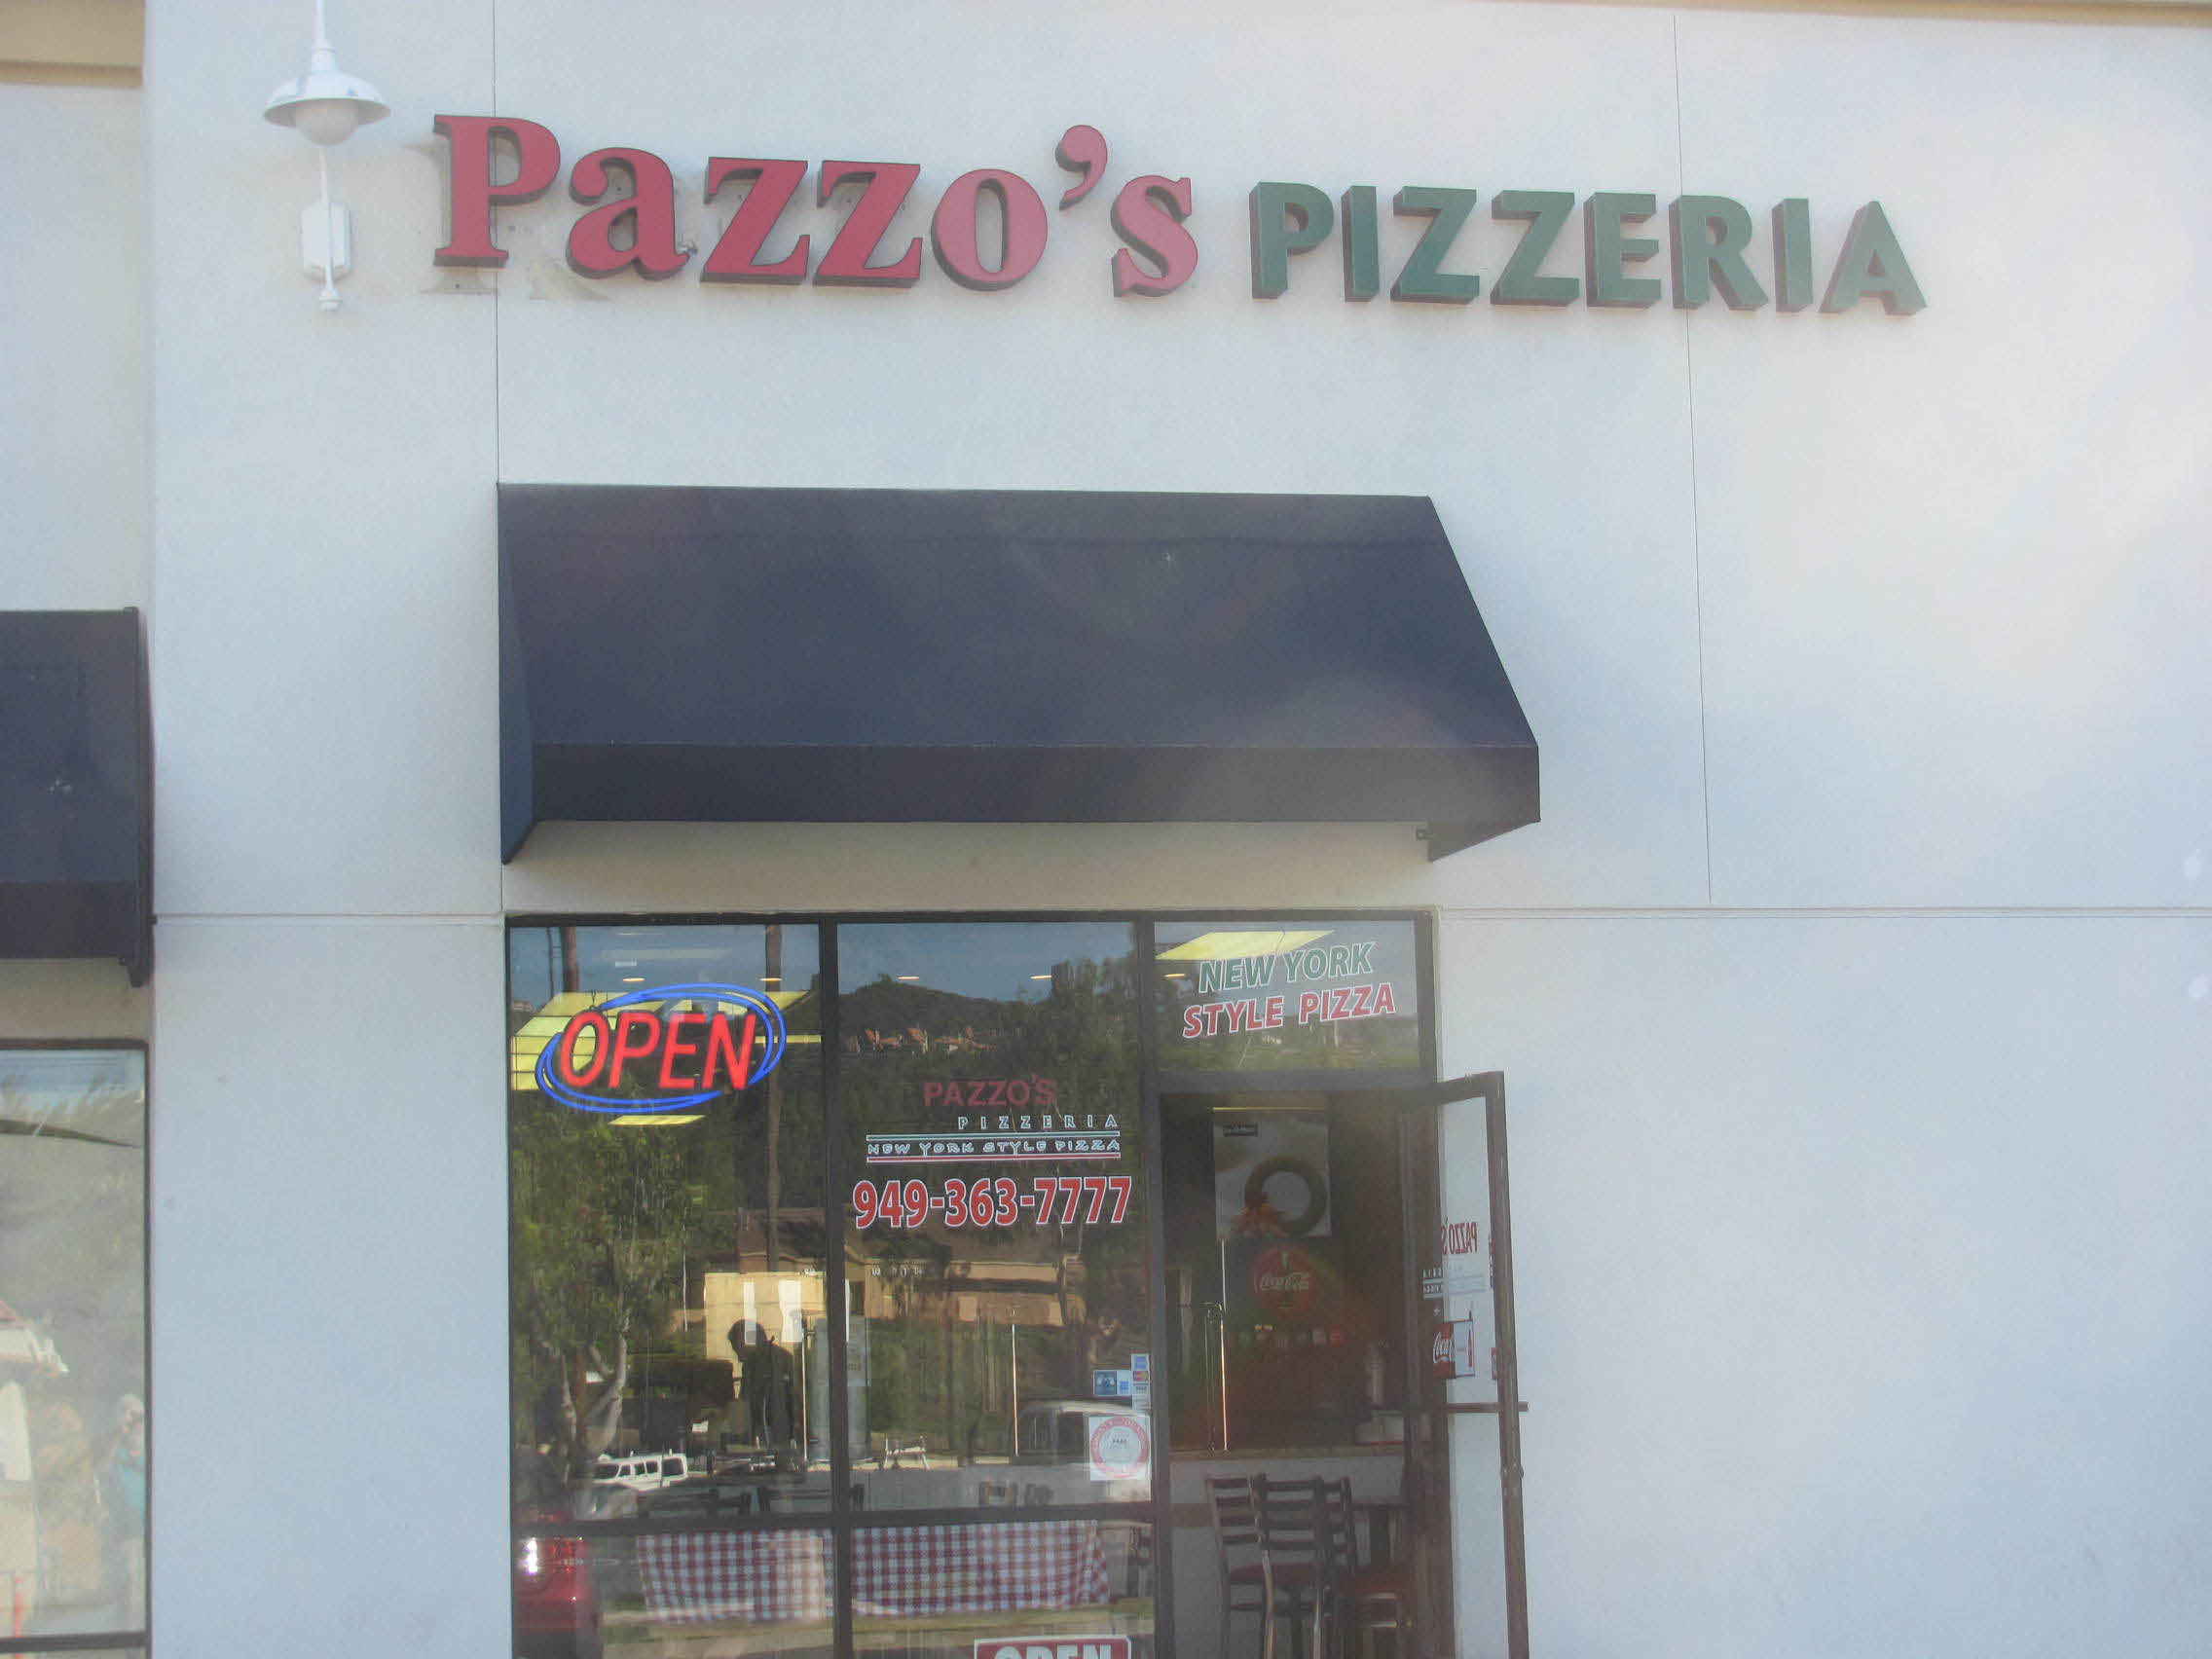 pizza by the slice near me pizza coupons near me pizza delivery near me